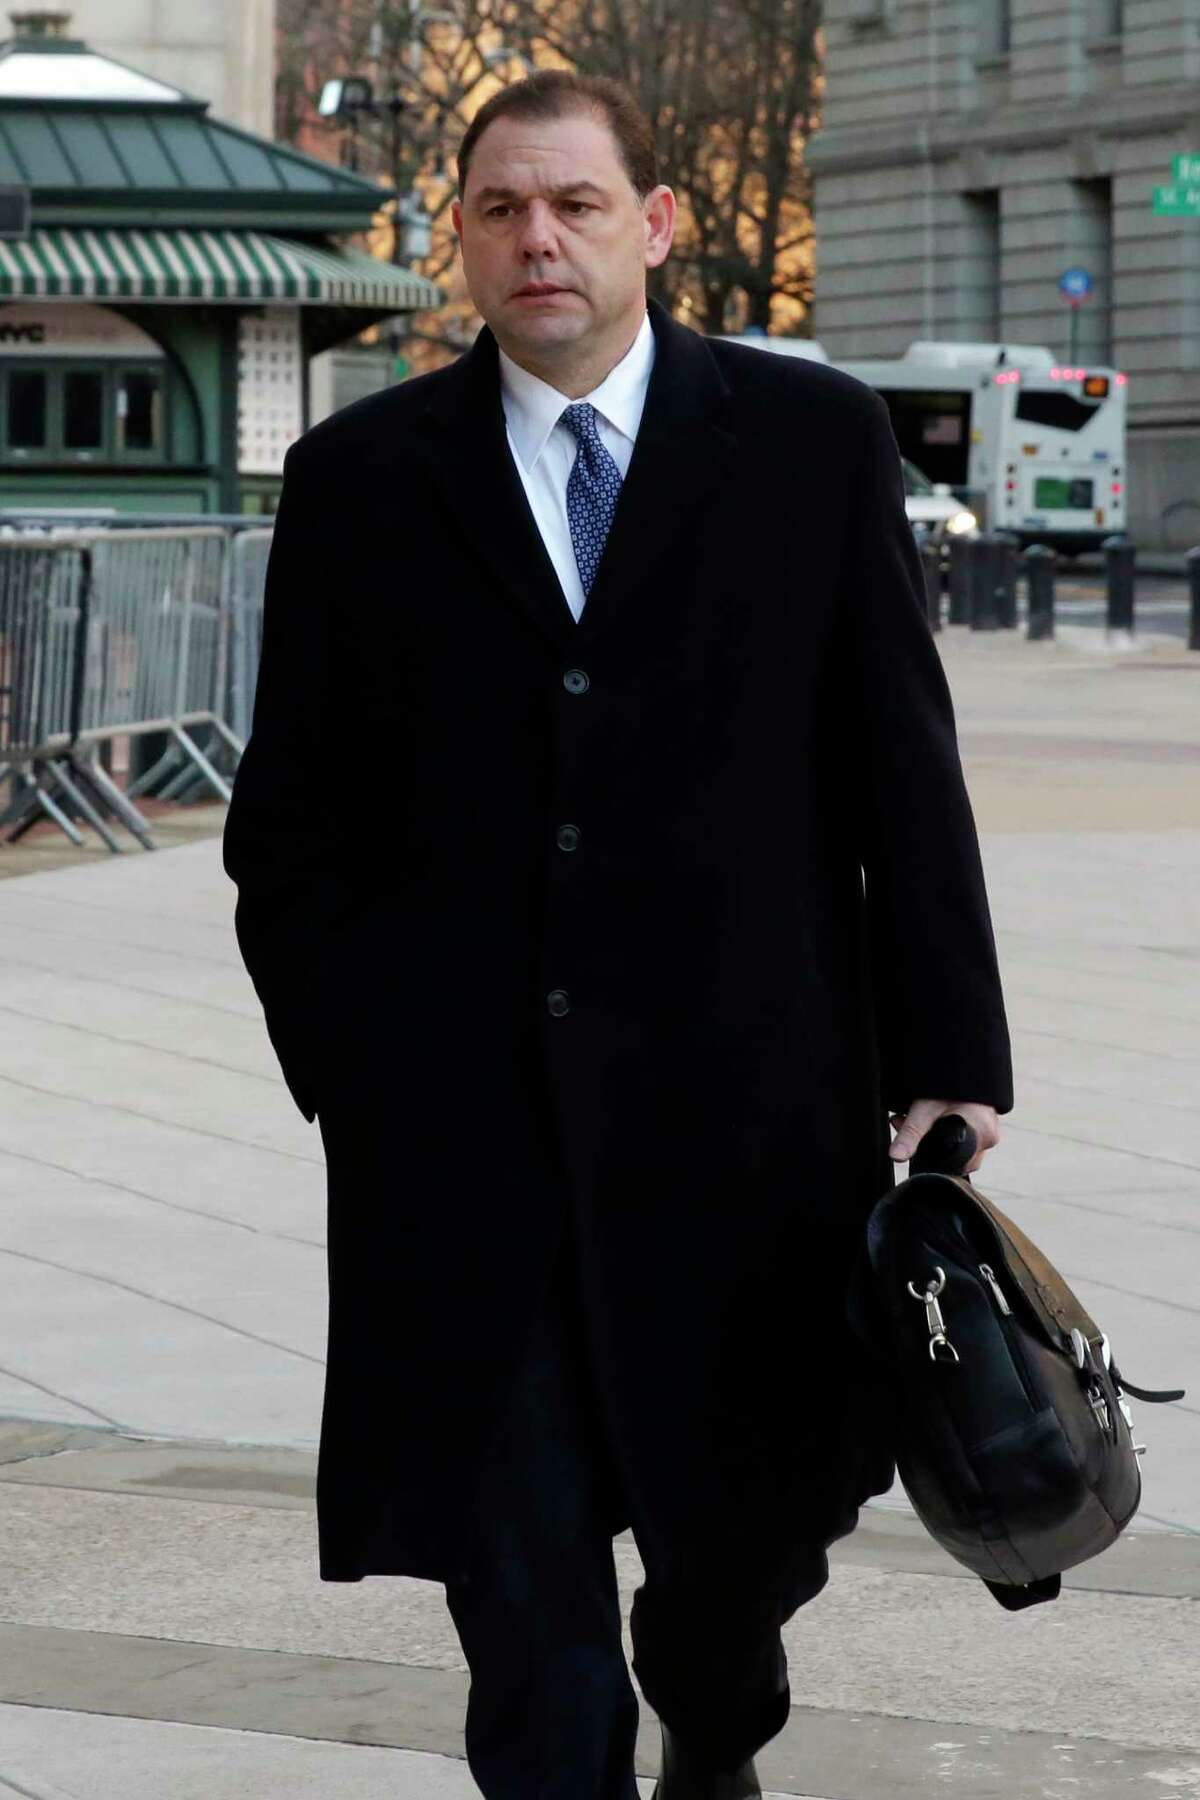 Joseph Percoco arrives at Federal Court, in New York, Thursday, Jan. 25, 2018. Percoco is on trial on charges that he accepted over $300,000 in bribes, most of it in the form of a job for his wife, in return for help he provided three businessmen who are co-defendants with him. (AP Photo/Richard Drew)